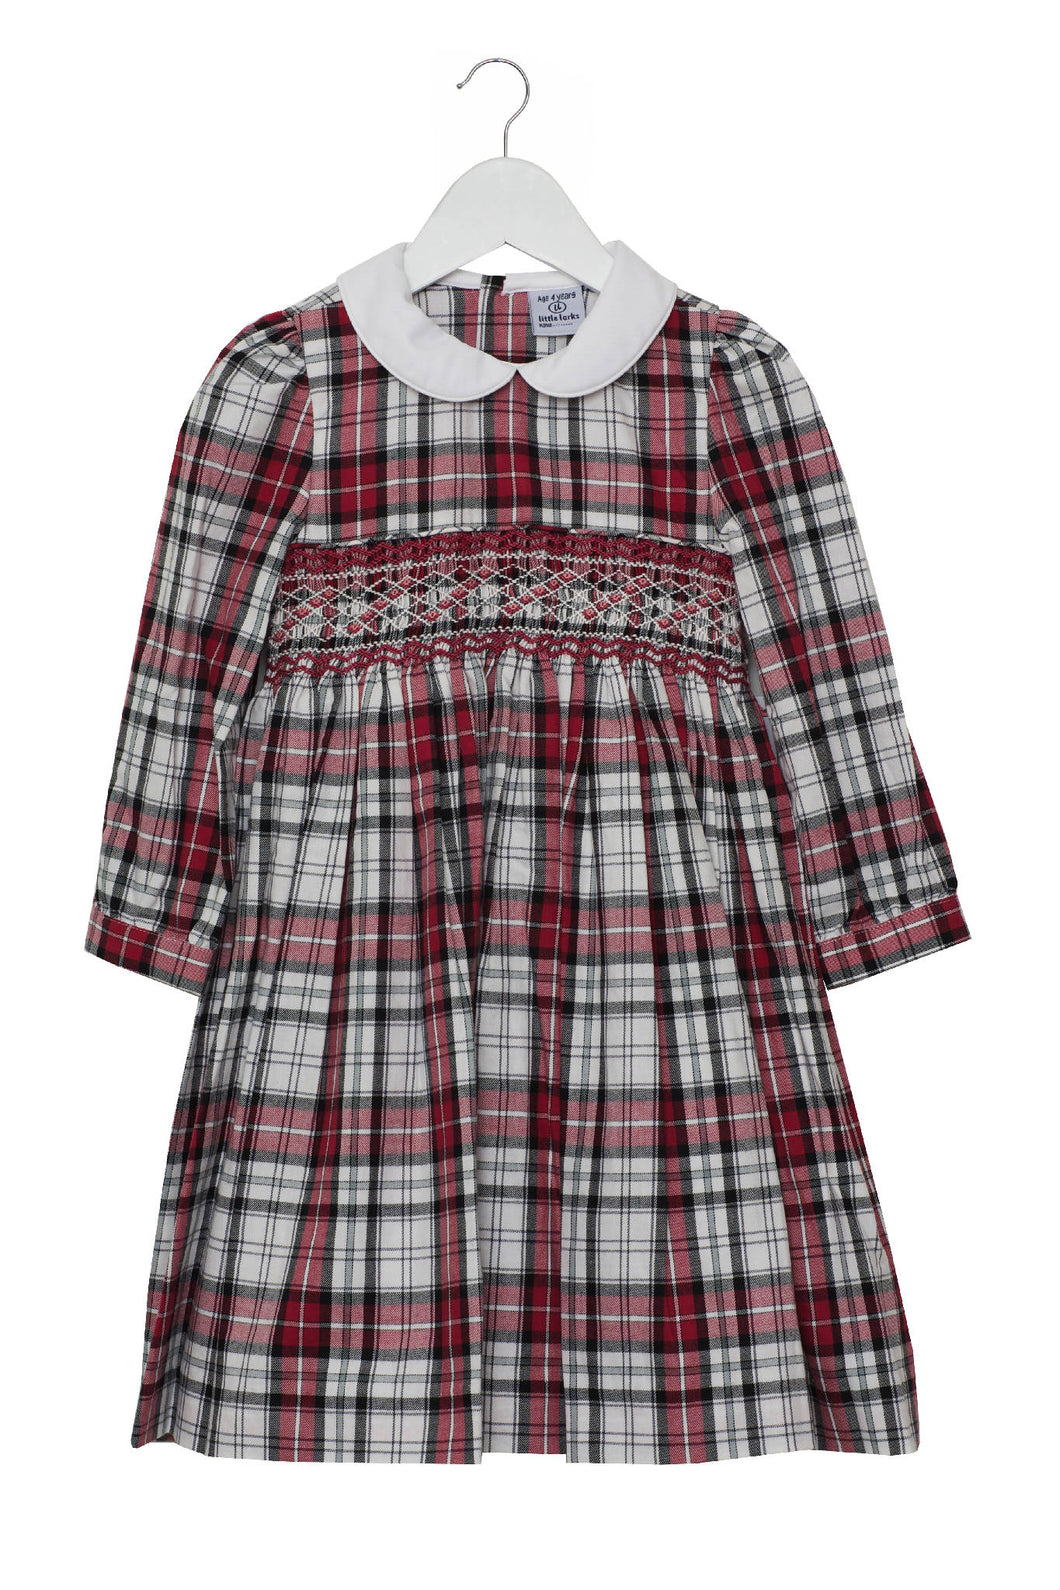 Charlie Mae Dress (2yrs- 8yrs)